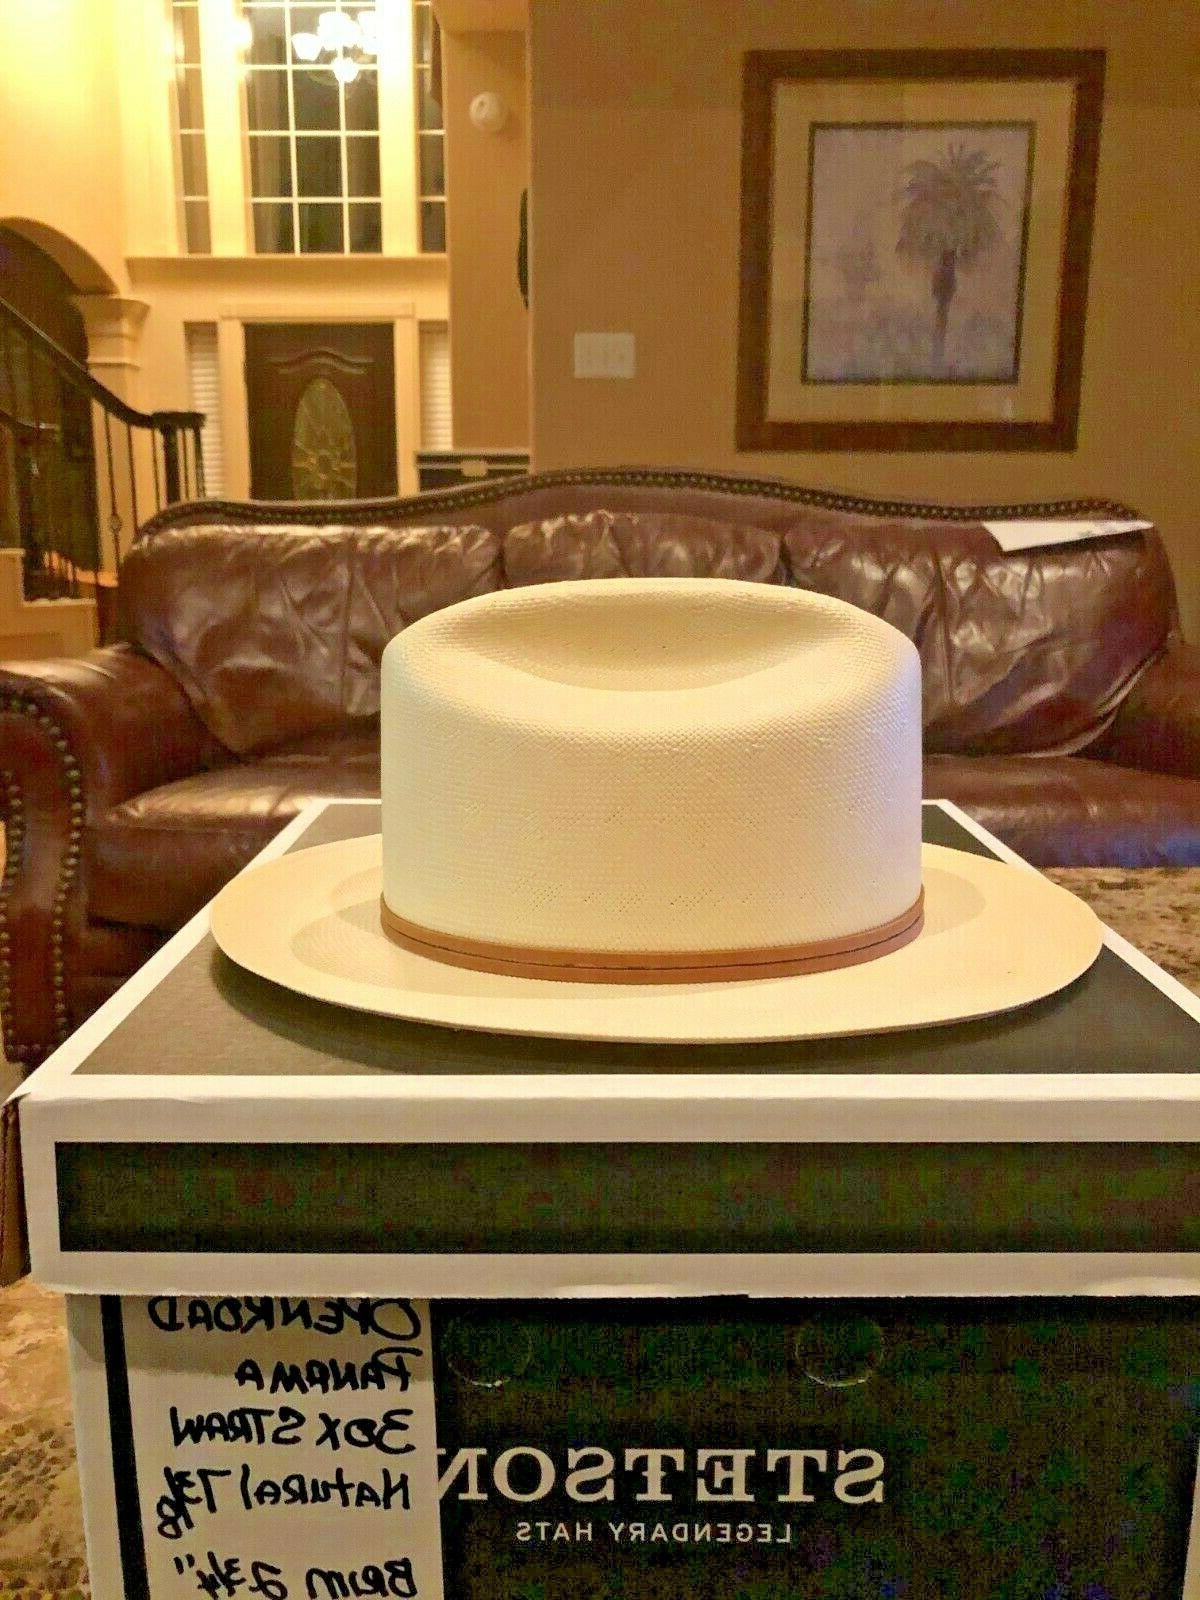 STETSON NATURAL 7 WESTERN!